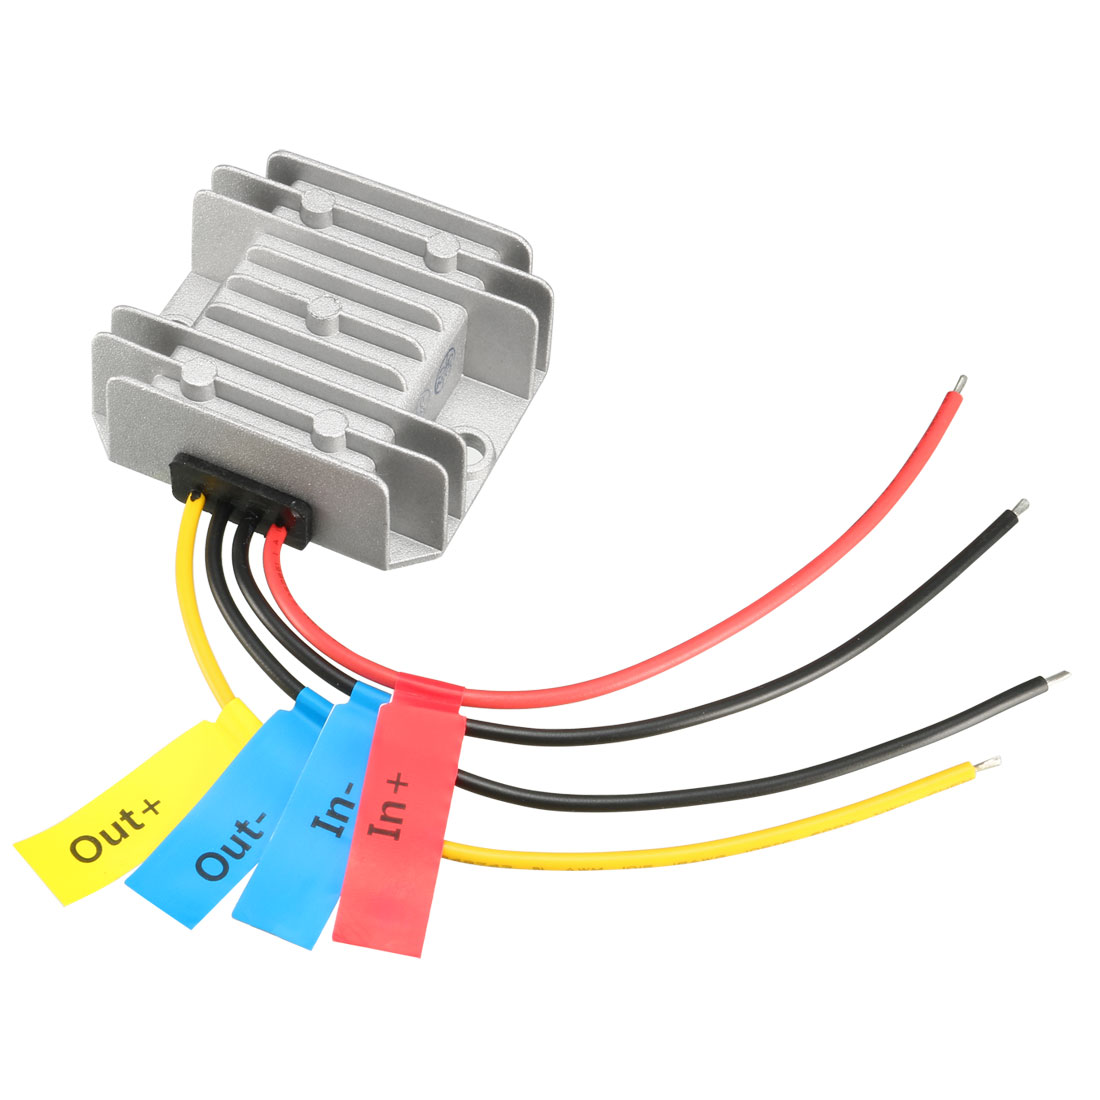 uxcell Voltage Converter Regulator DC/DC DC 9-32V to DC 12V 1A 12W Step Down/Up Transformer Waterproof